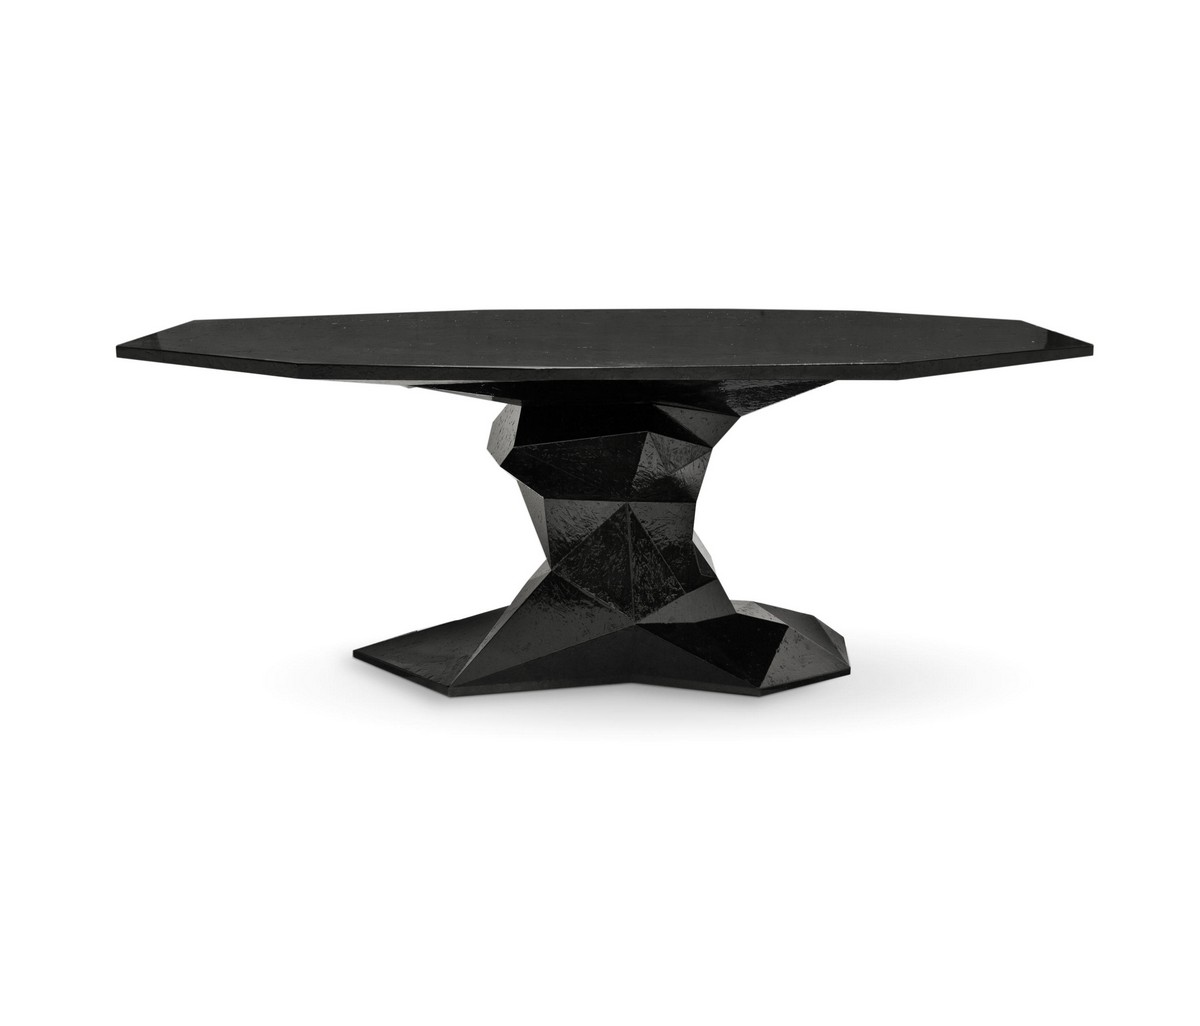 Artistic Dining Table Ideas For An Exquisite Dining Room Decor (Part II)  Artistic Dining Table Ideas For An Exquisite Dining Room Decor (Part II) bl3